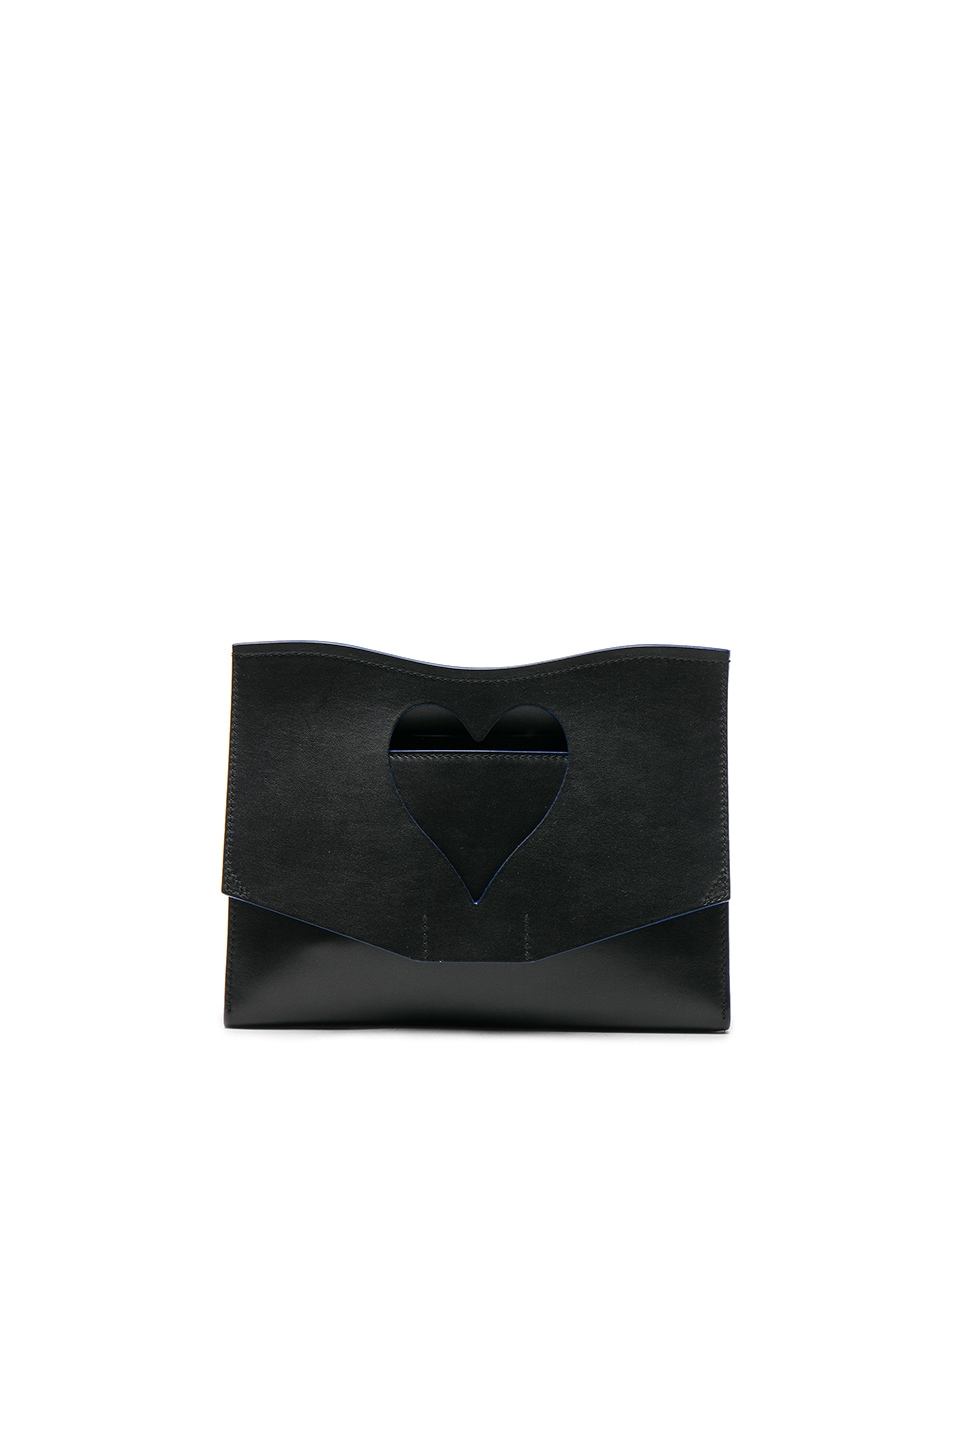 Image 1 of Proenza Schouler Medium Cut-Out Curl Leather Clutch in Black